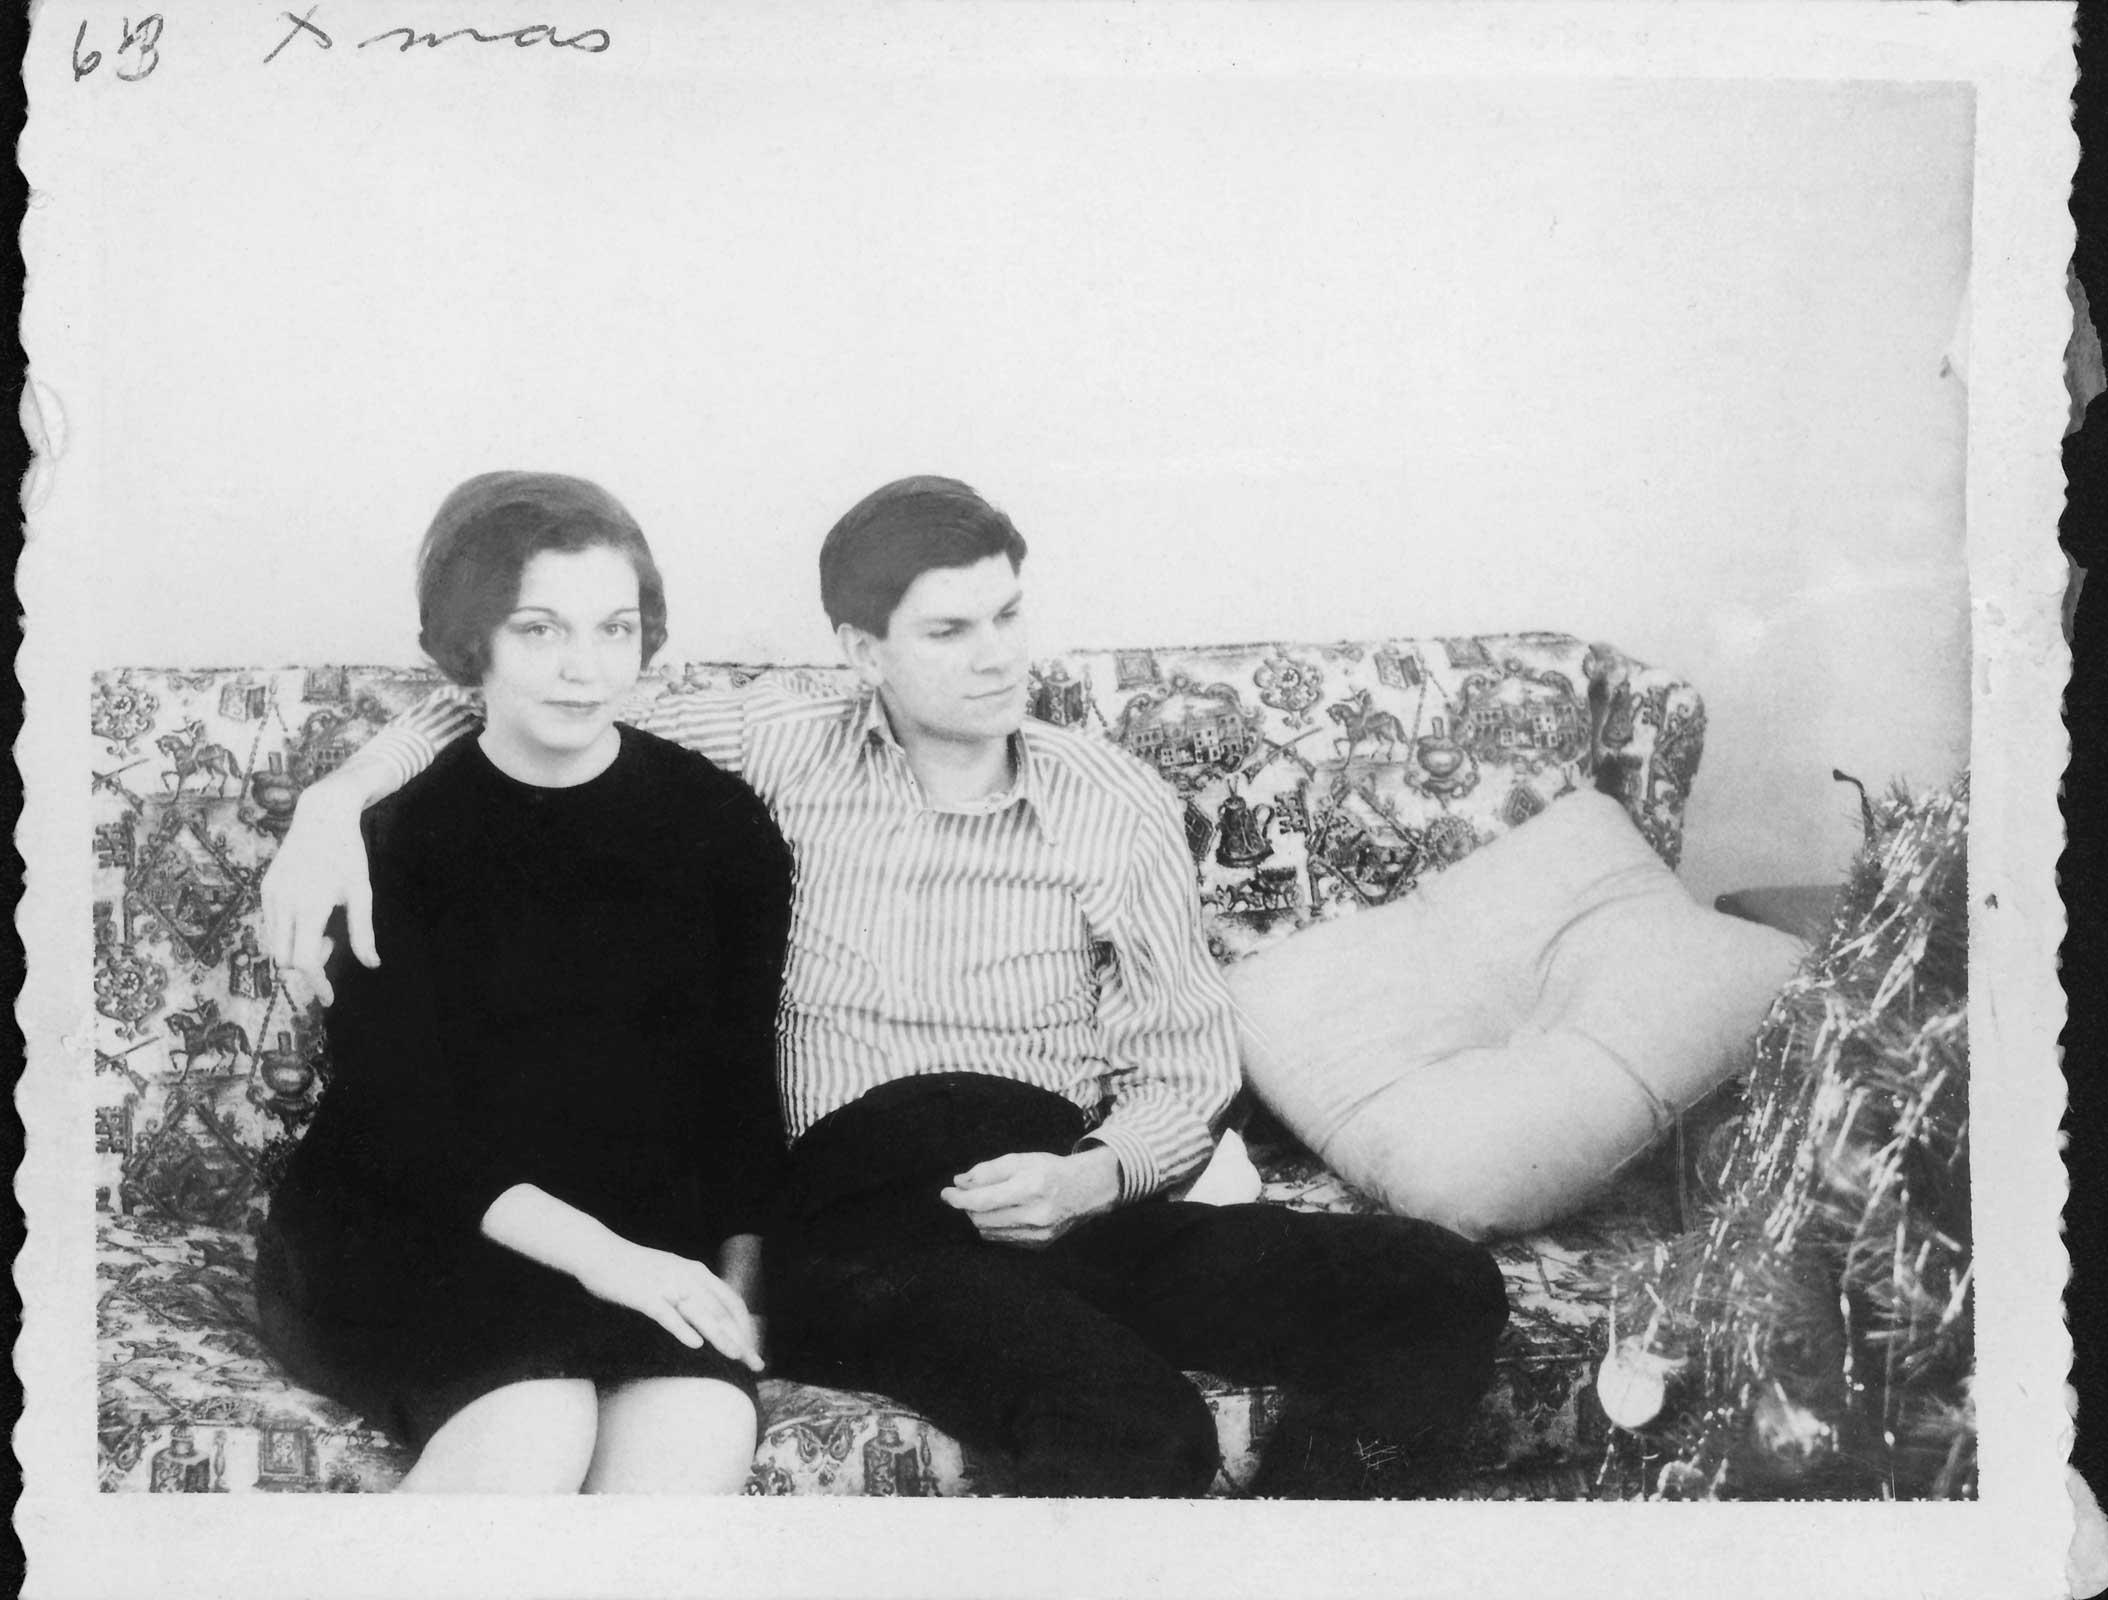 black and white photograph of a man and woman sitting on floral pattern sofa. Man has his arm around the woman and she is looking at the camera.